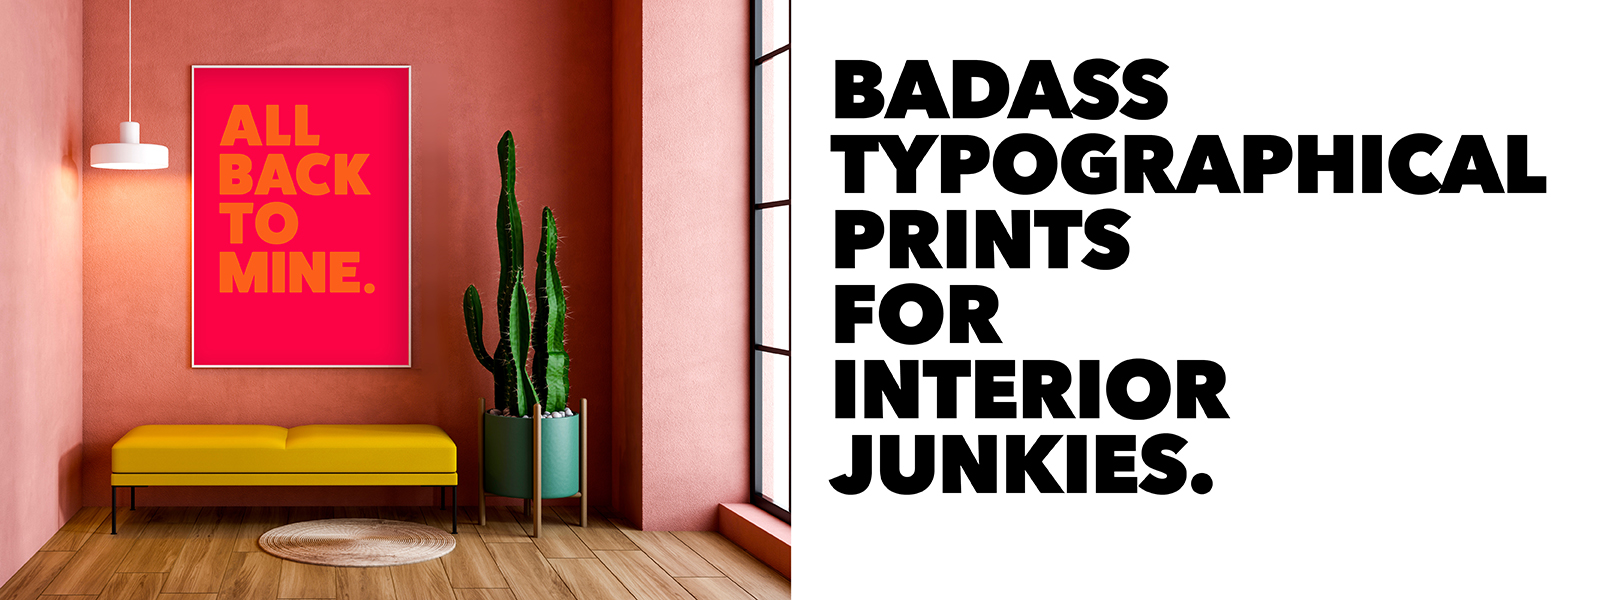 Badass Typography Prints for Interior Junkies. Shop our banging collection of typography artwork